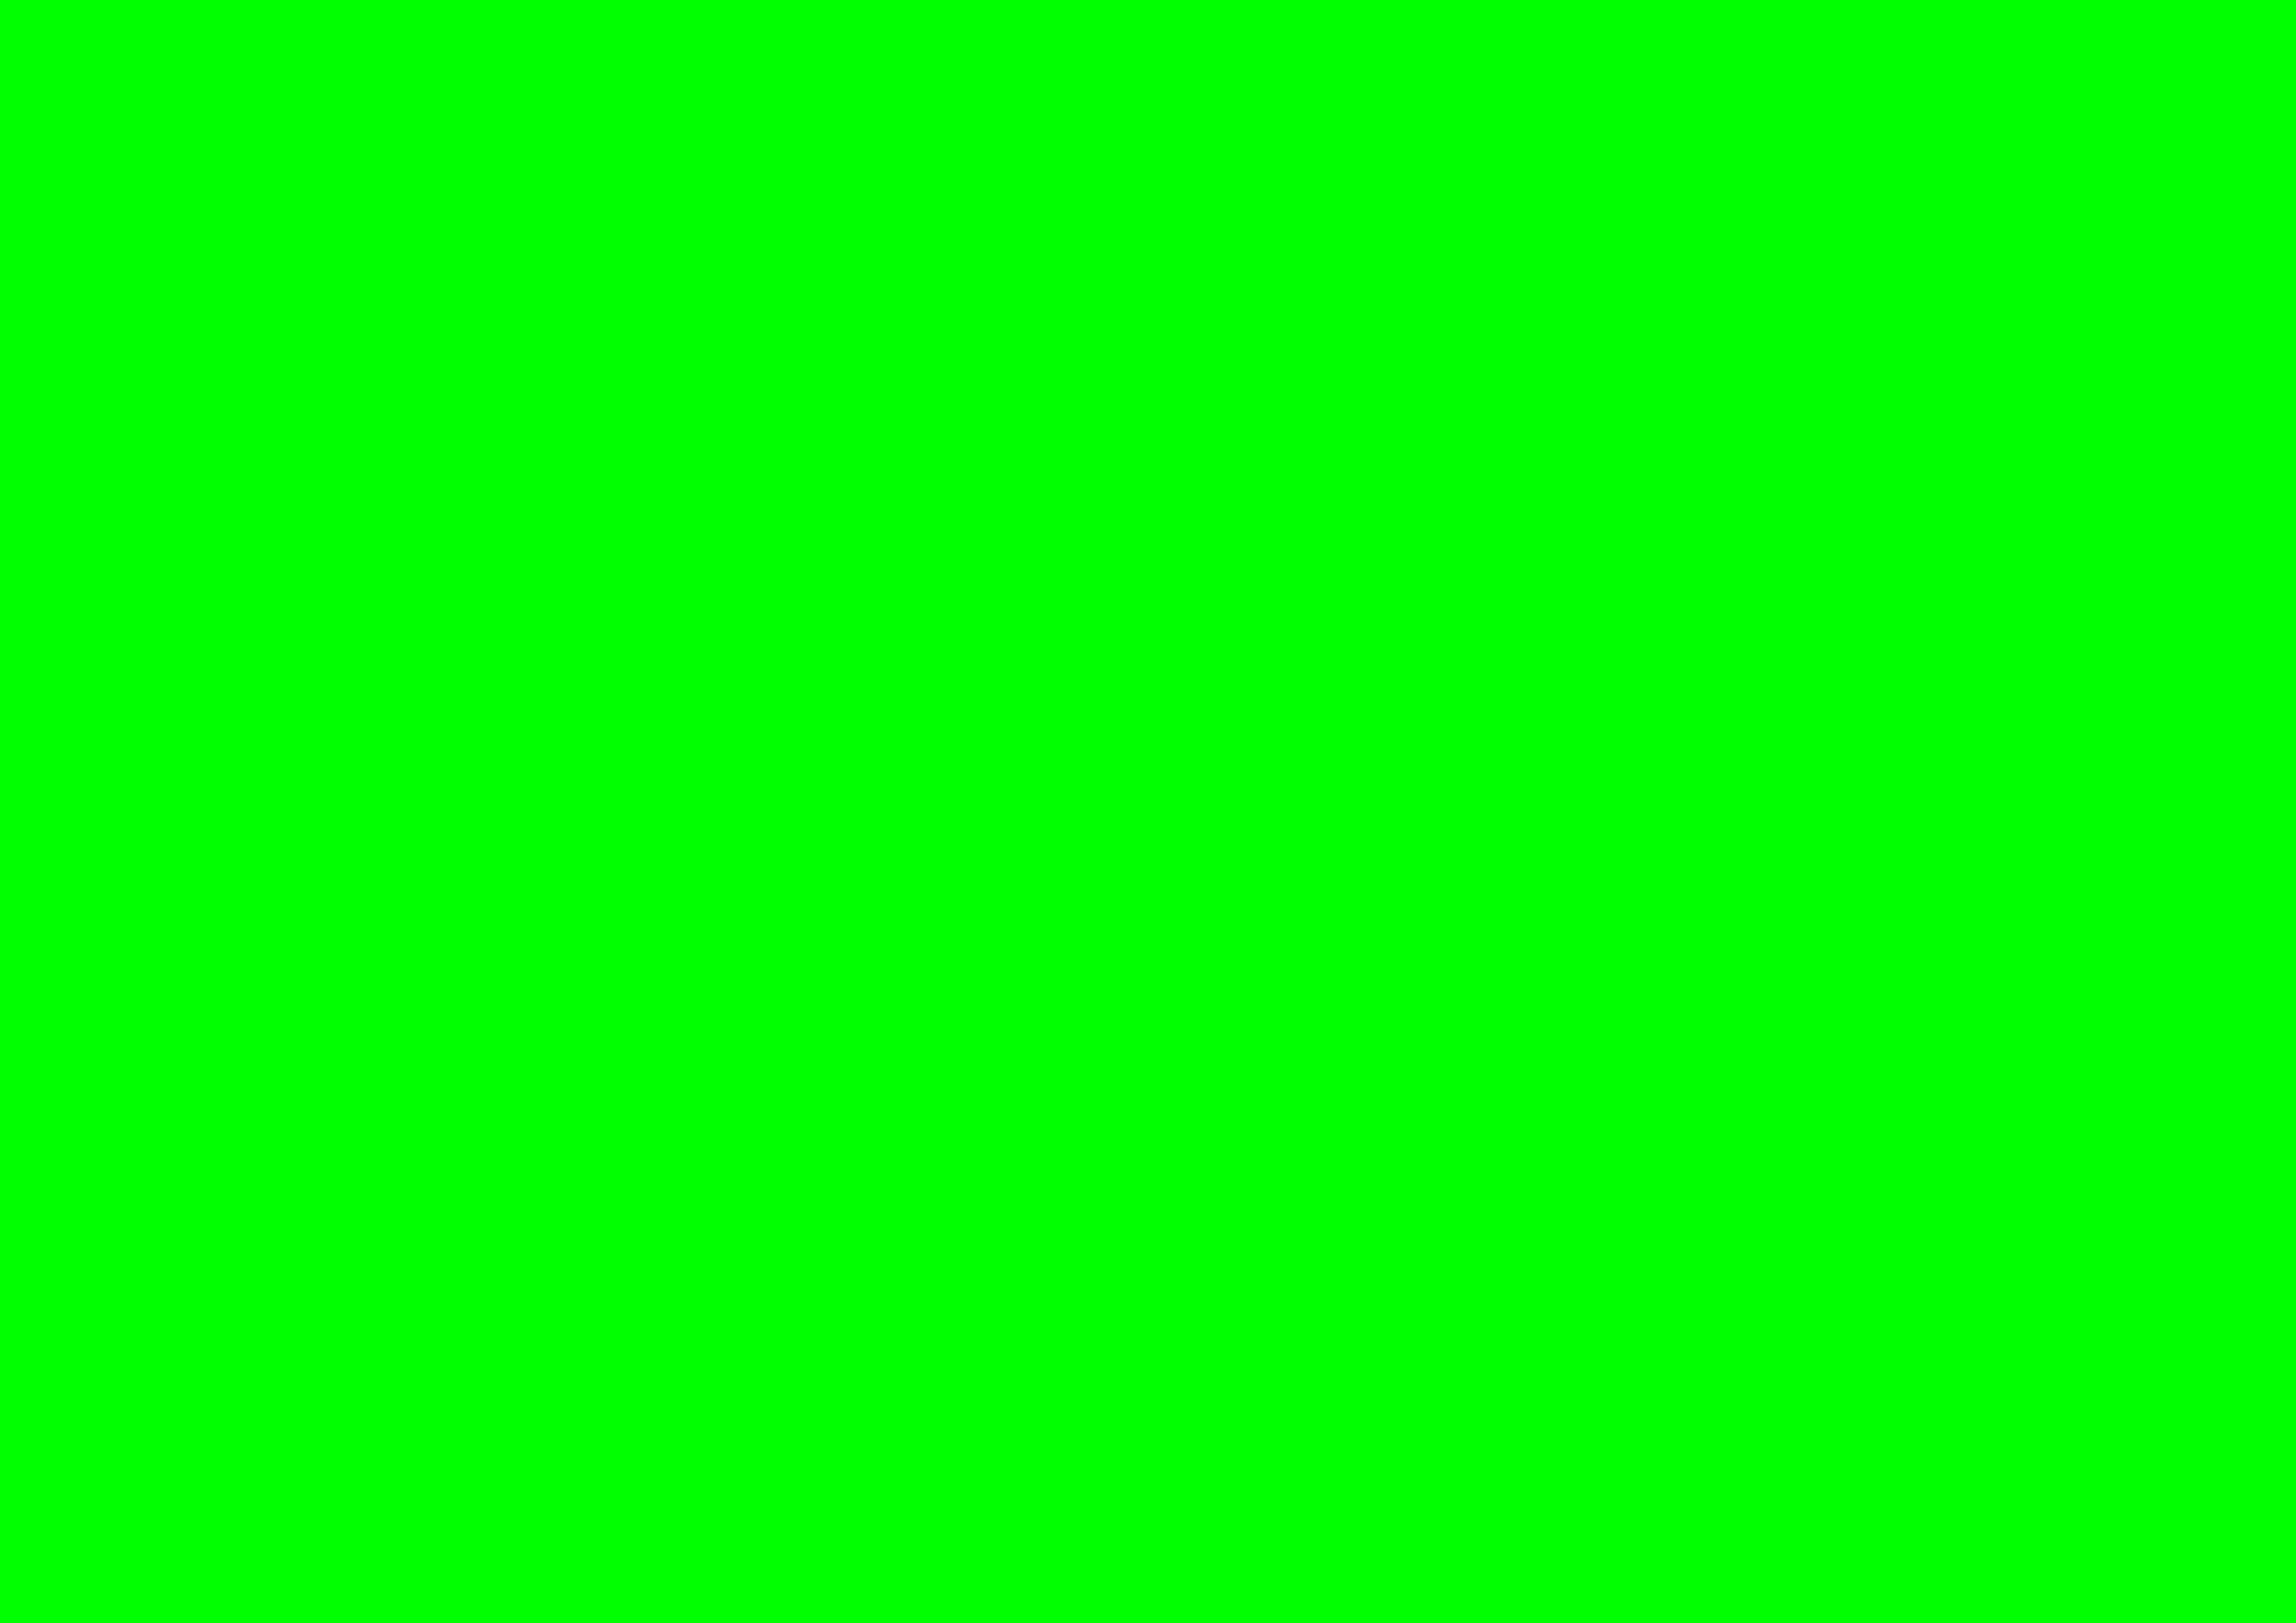 3508x2480 Electric Green Solid Color Background